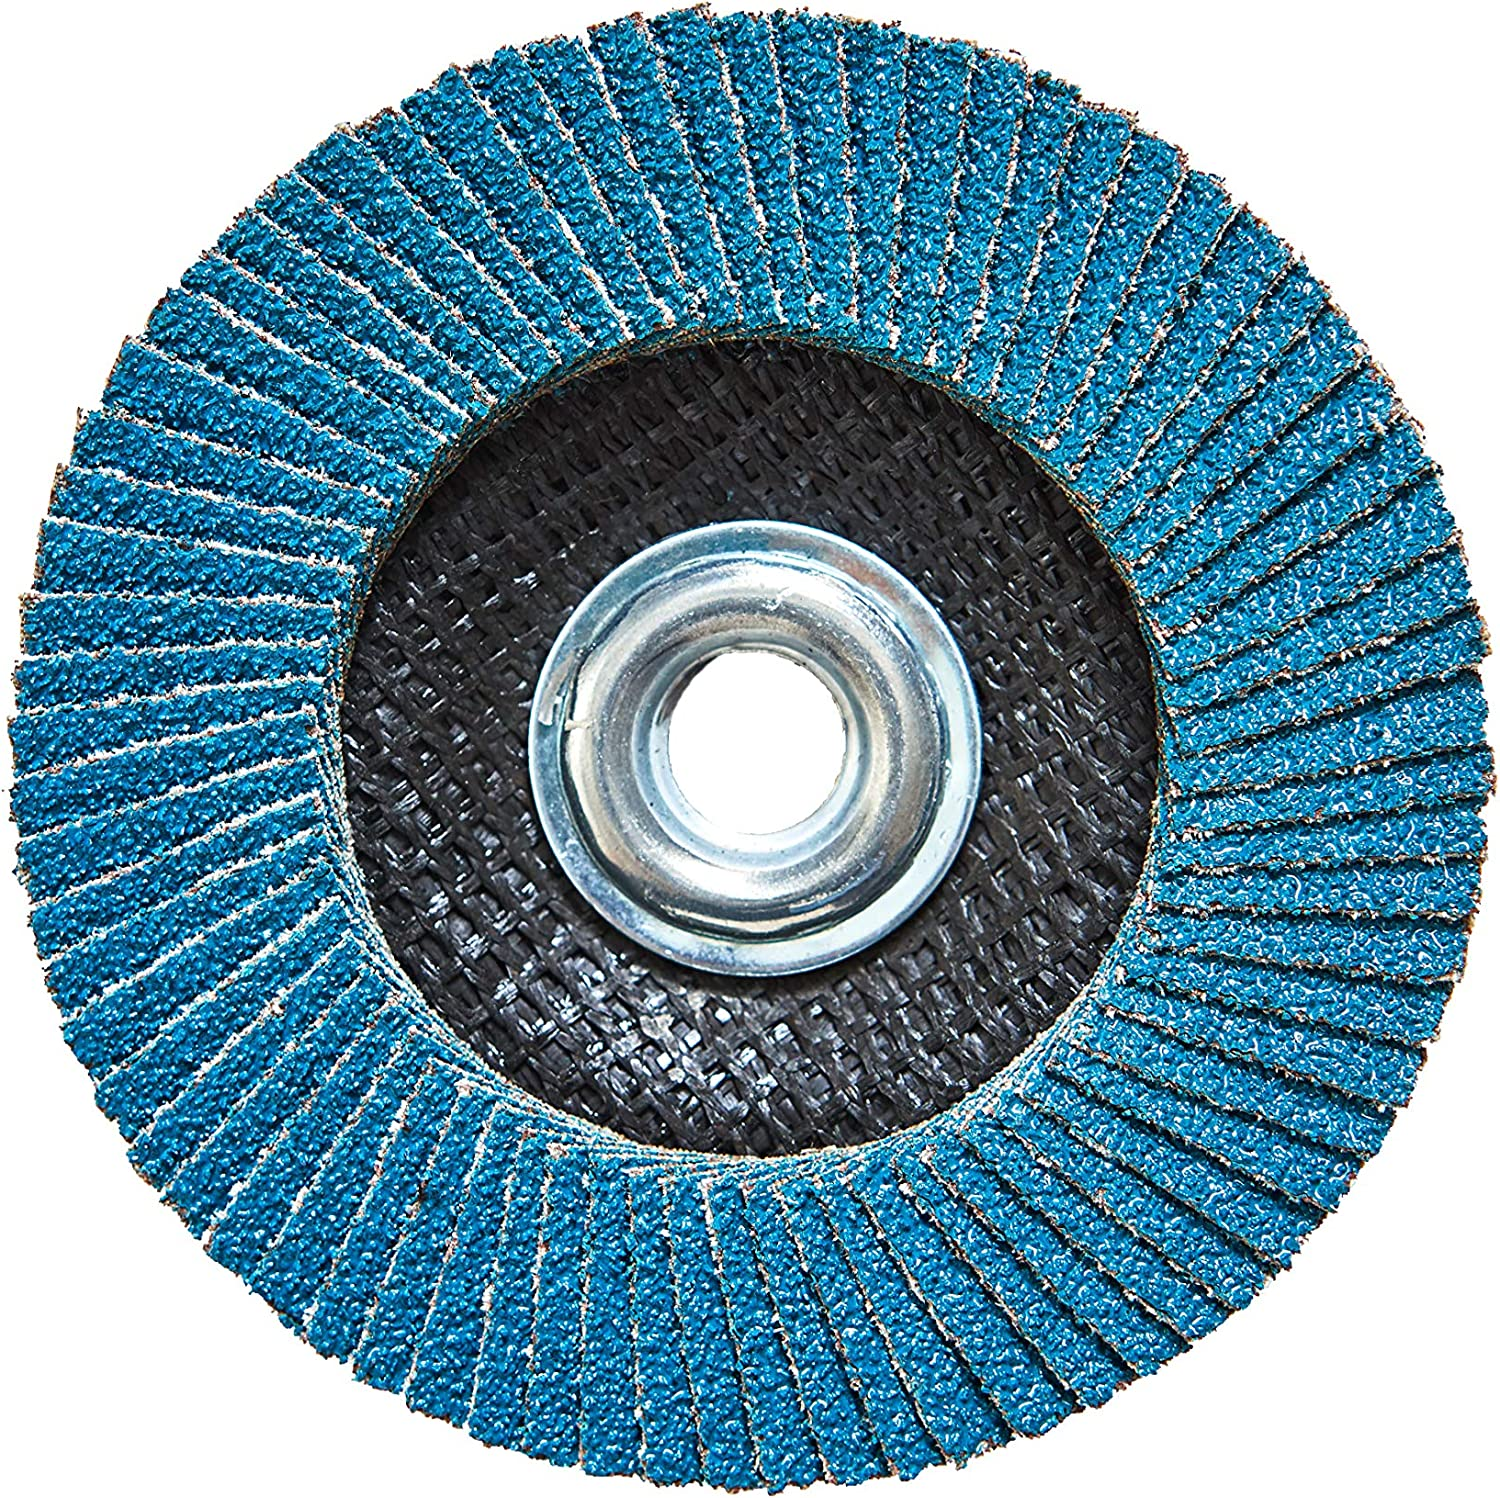 5 Pack of 40 Grit High Density Premium Zirconia with 5//8-11 Arbor 4 1//2 Flap Disc Thread Directly to Grinder